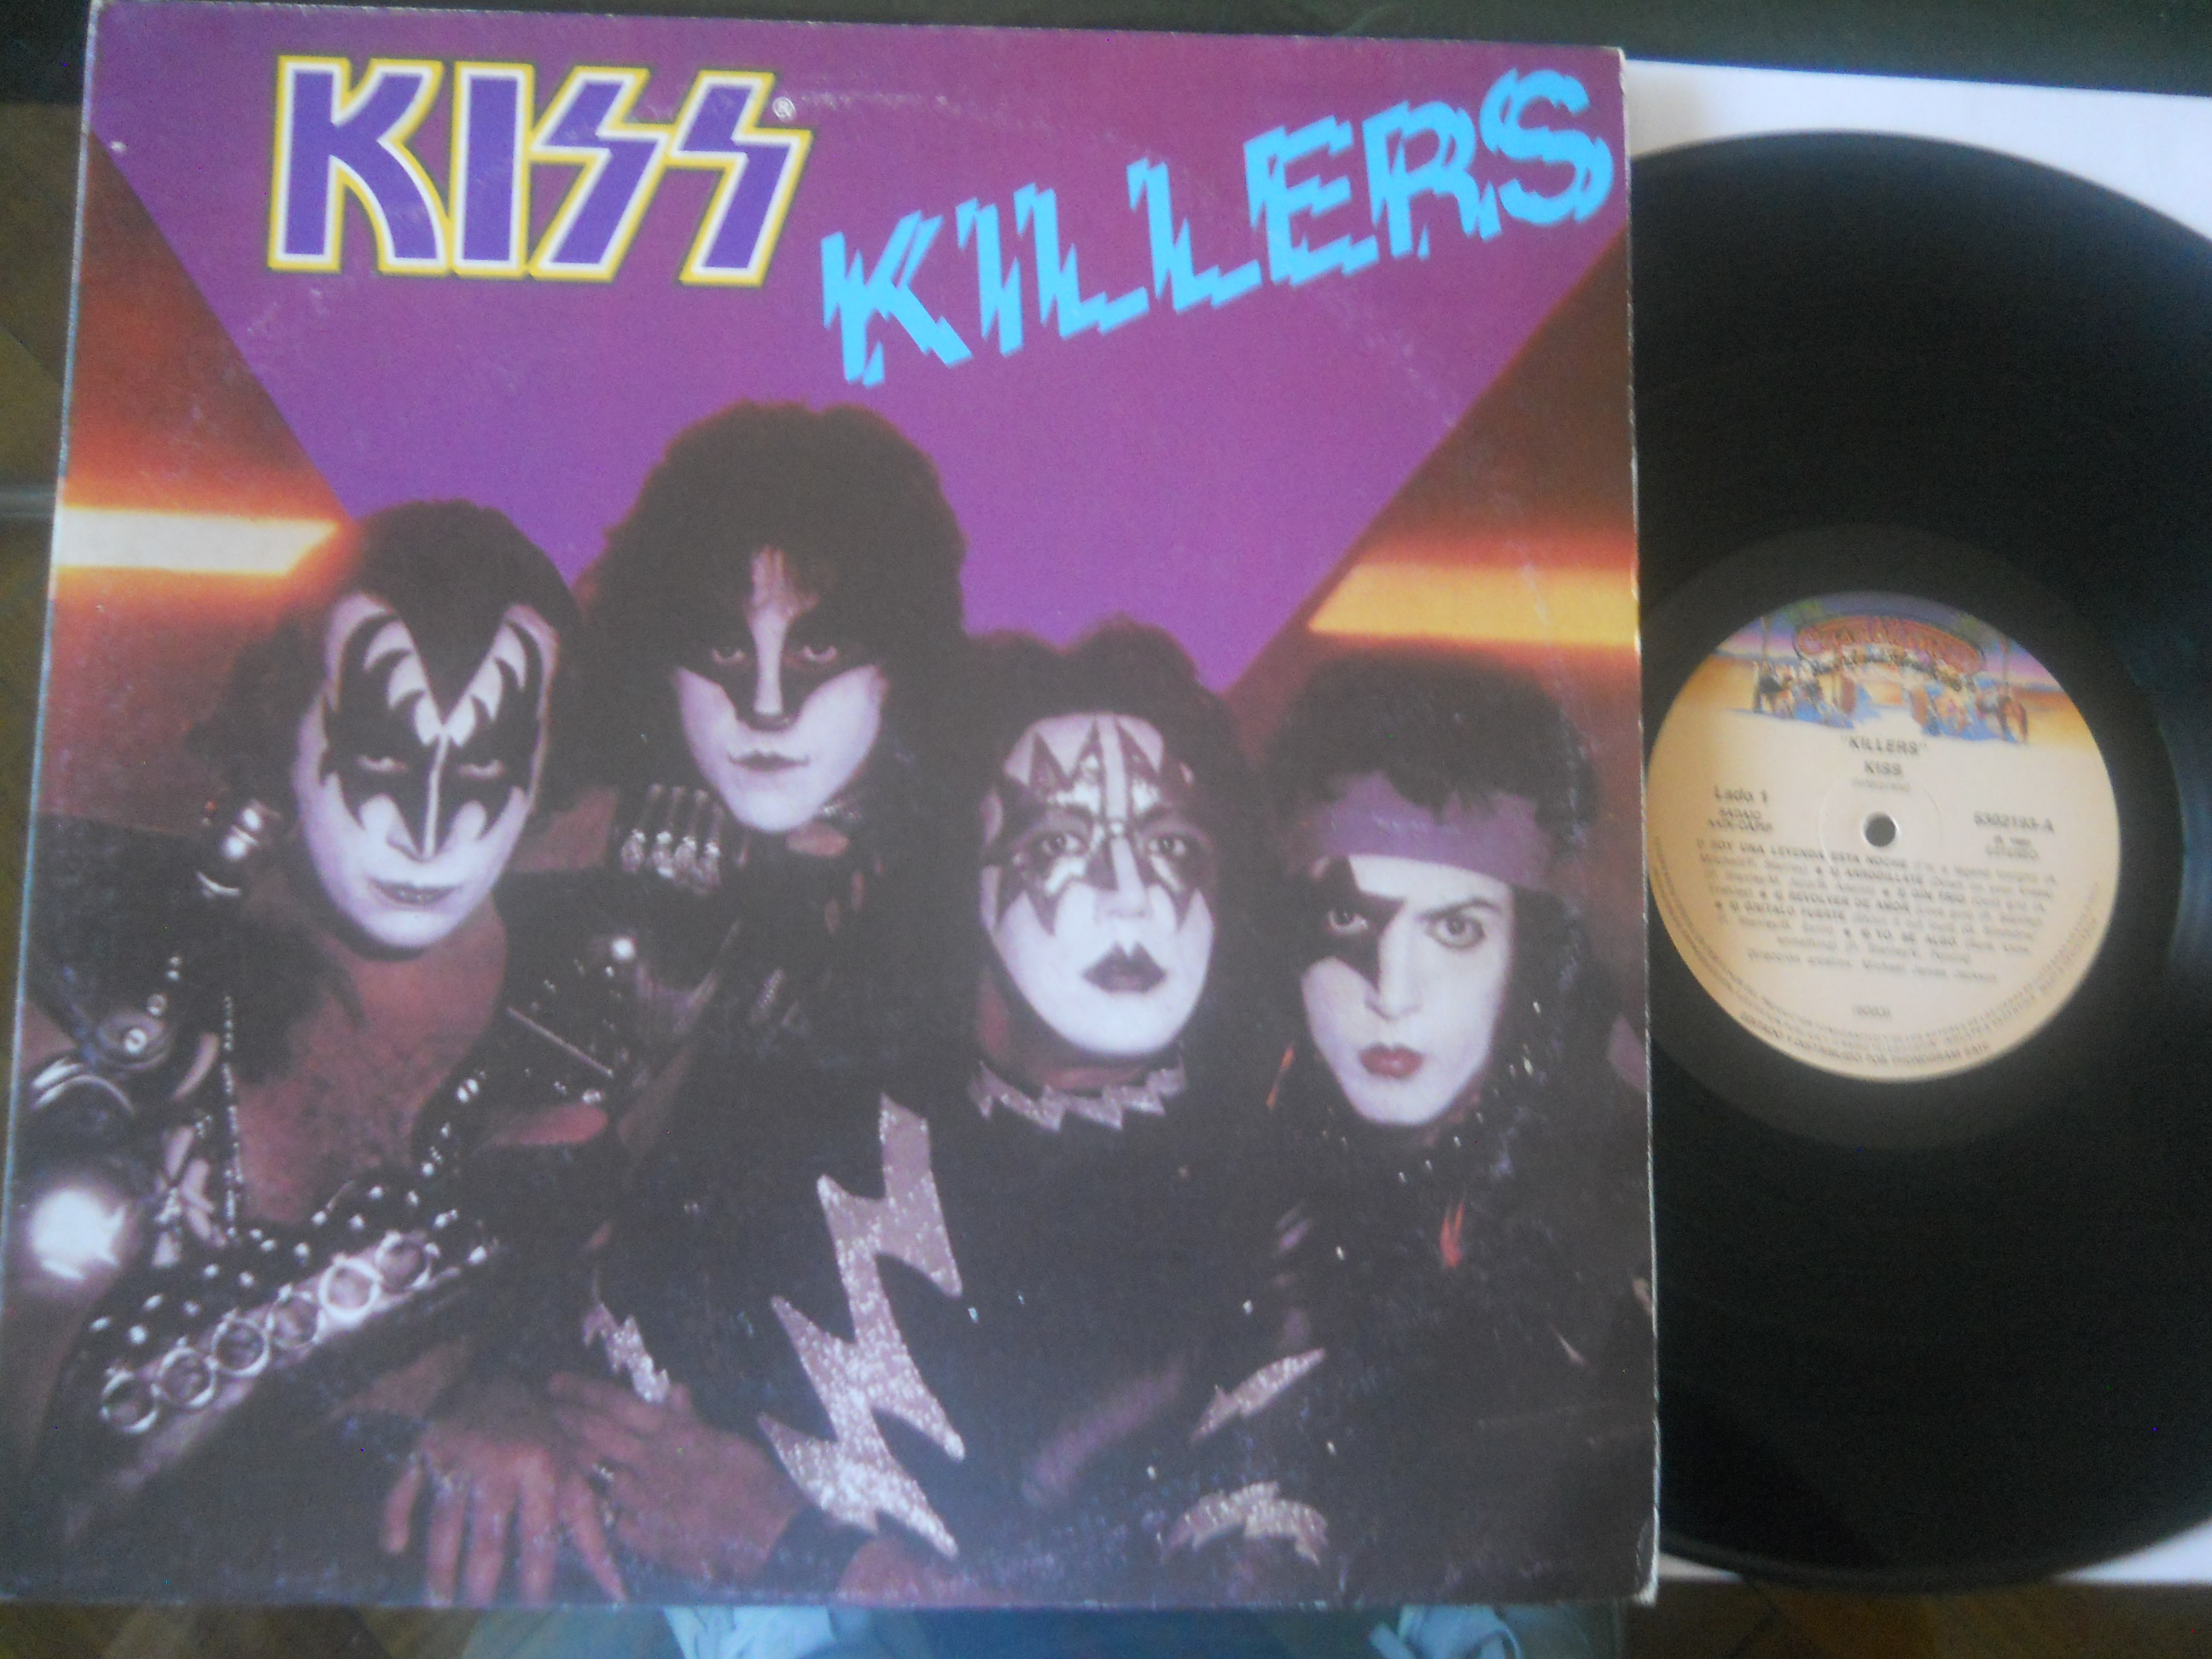 KISS - Killers LP